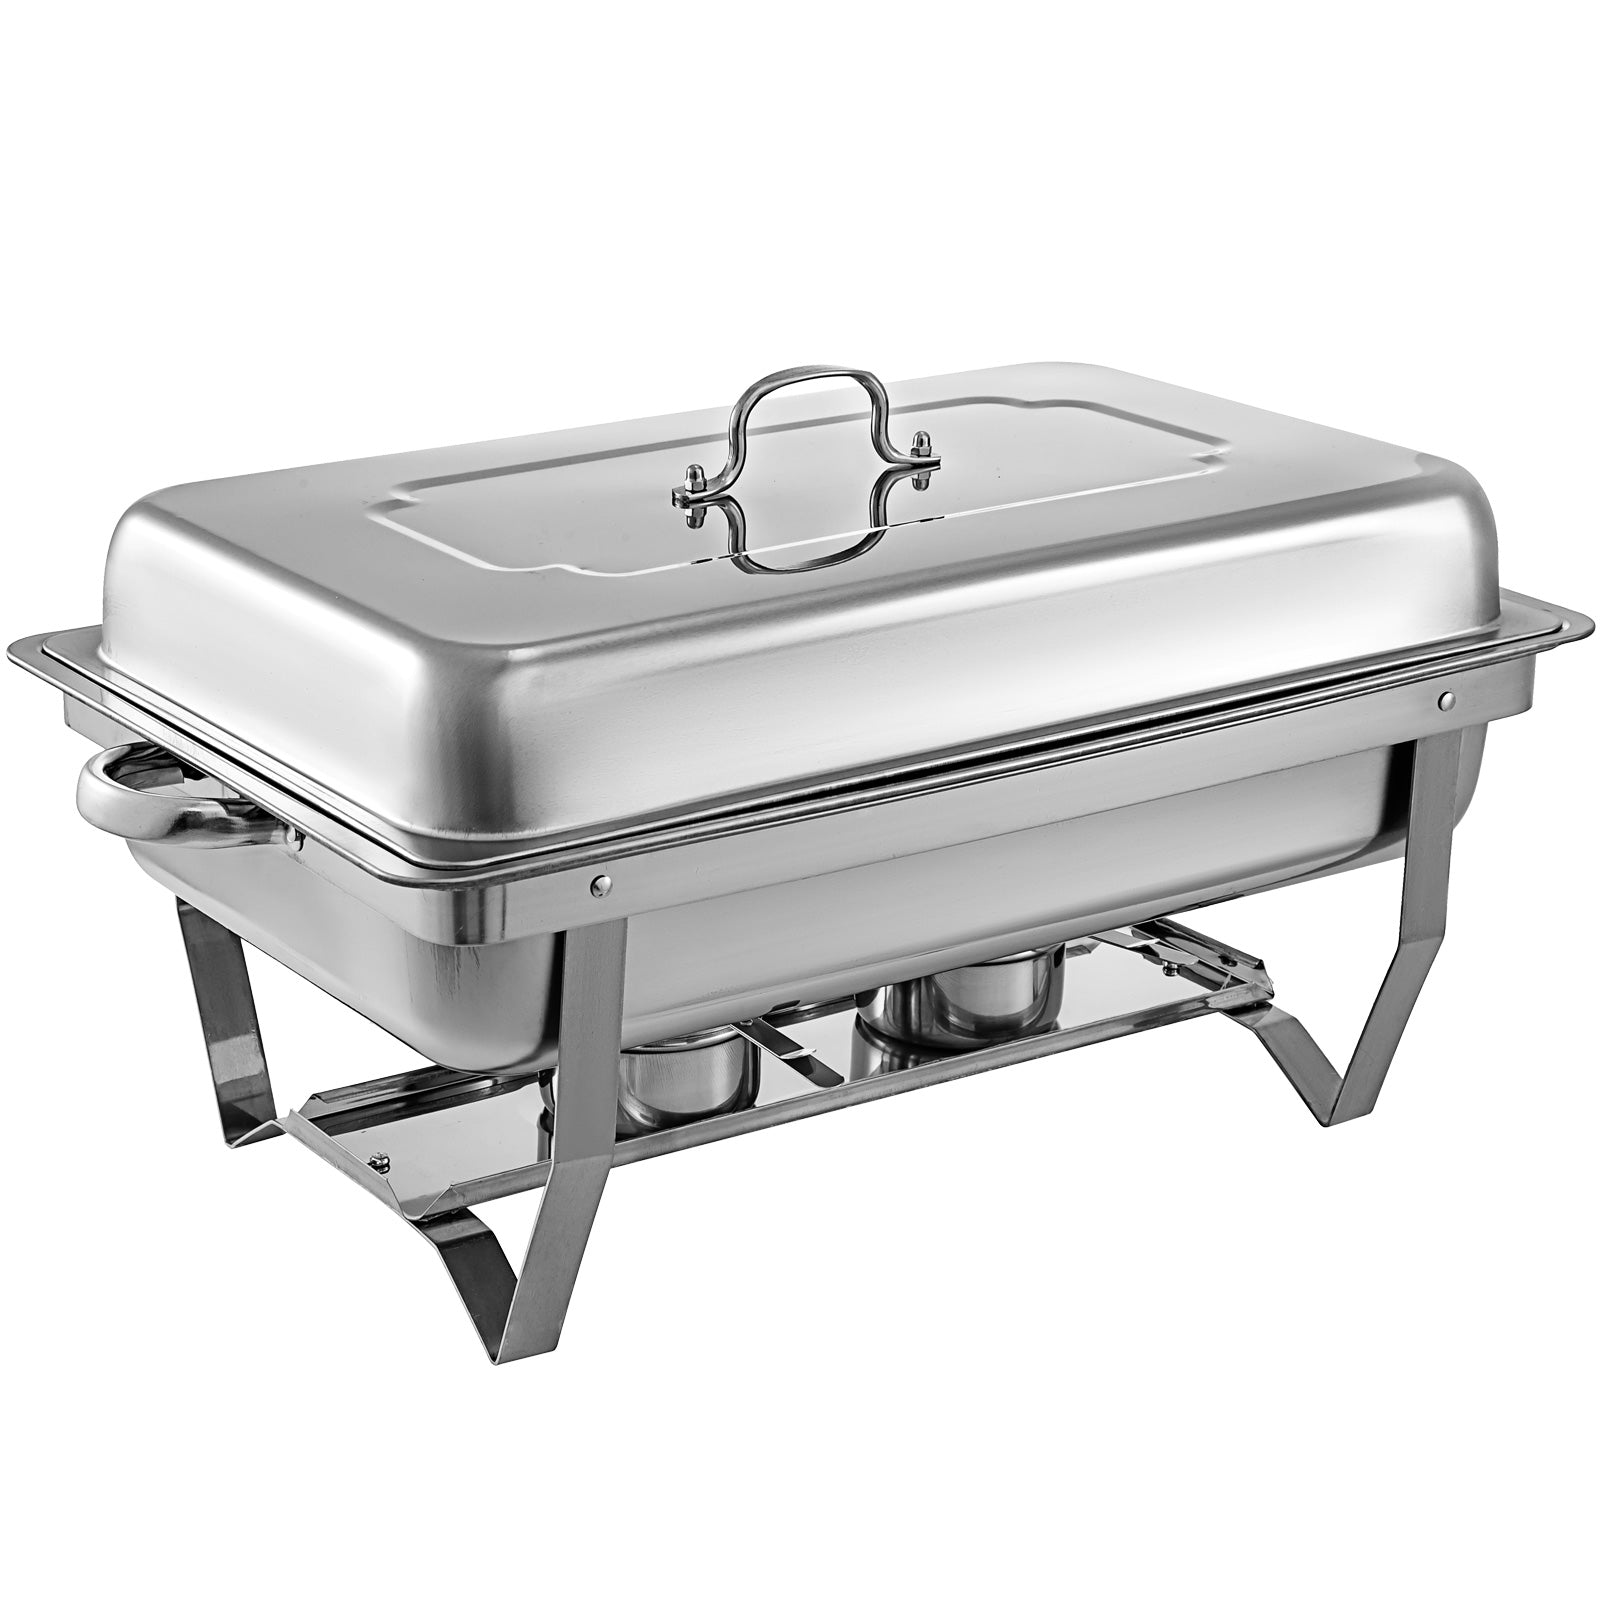 3 Packs Chafing Dish With 1/3 Inserts 9 L Chafer Buffet Tray With Lid Wedding